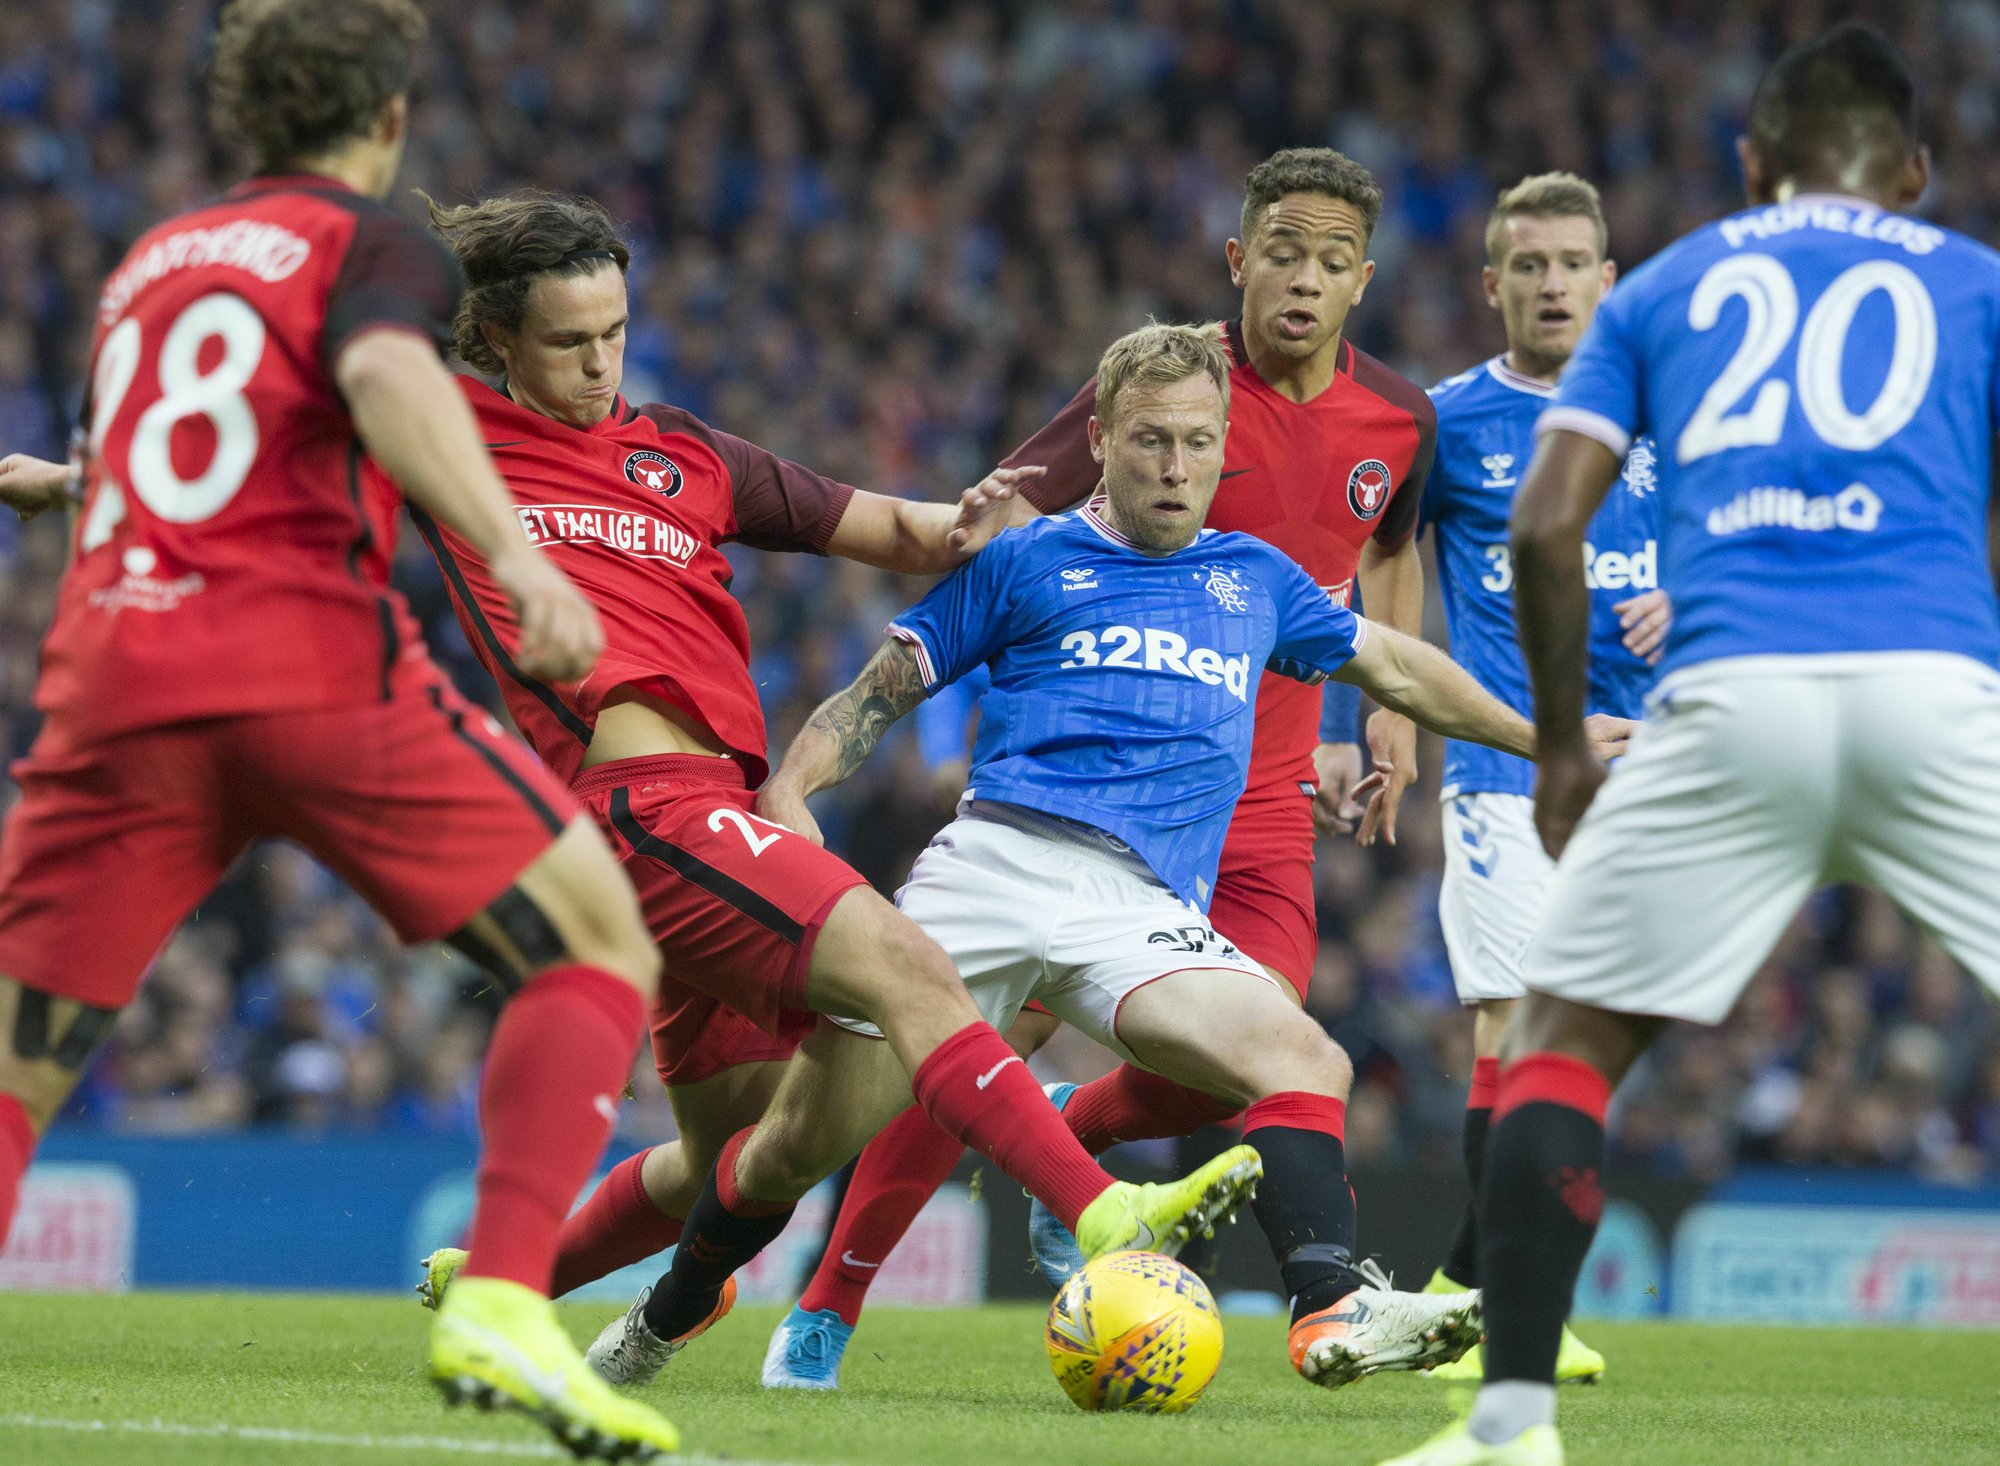 UEFA punishes Rangers for sectarian chants by fans